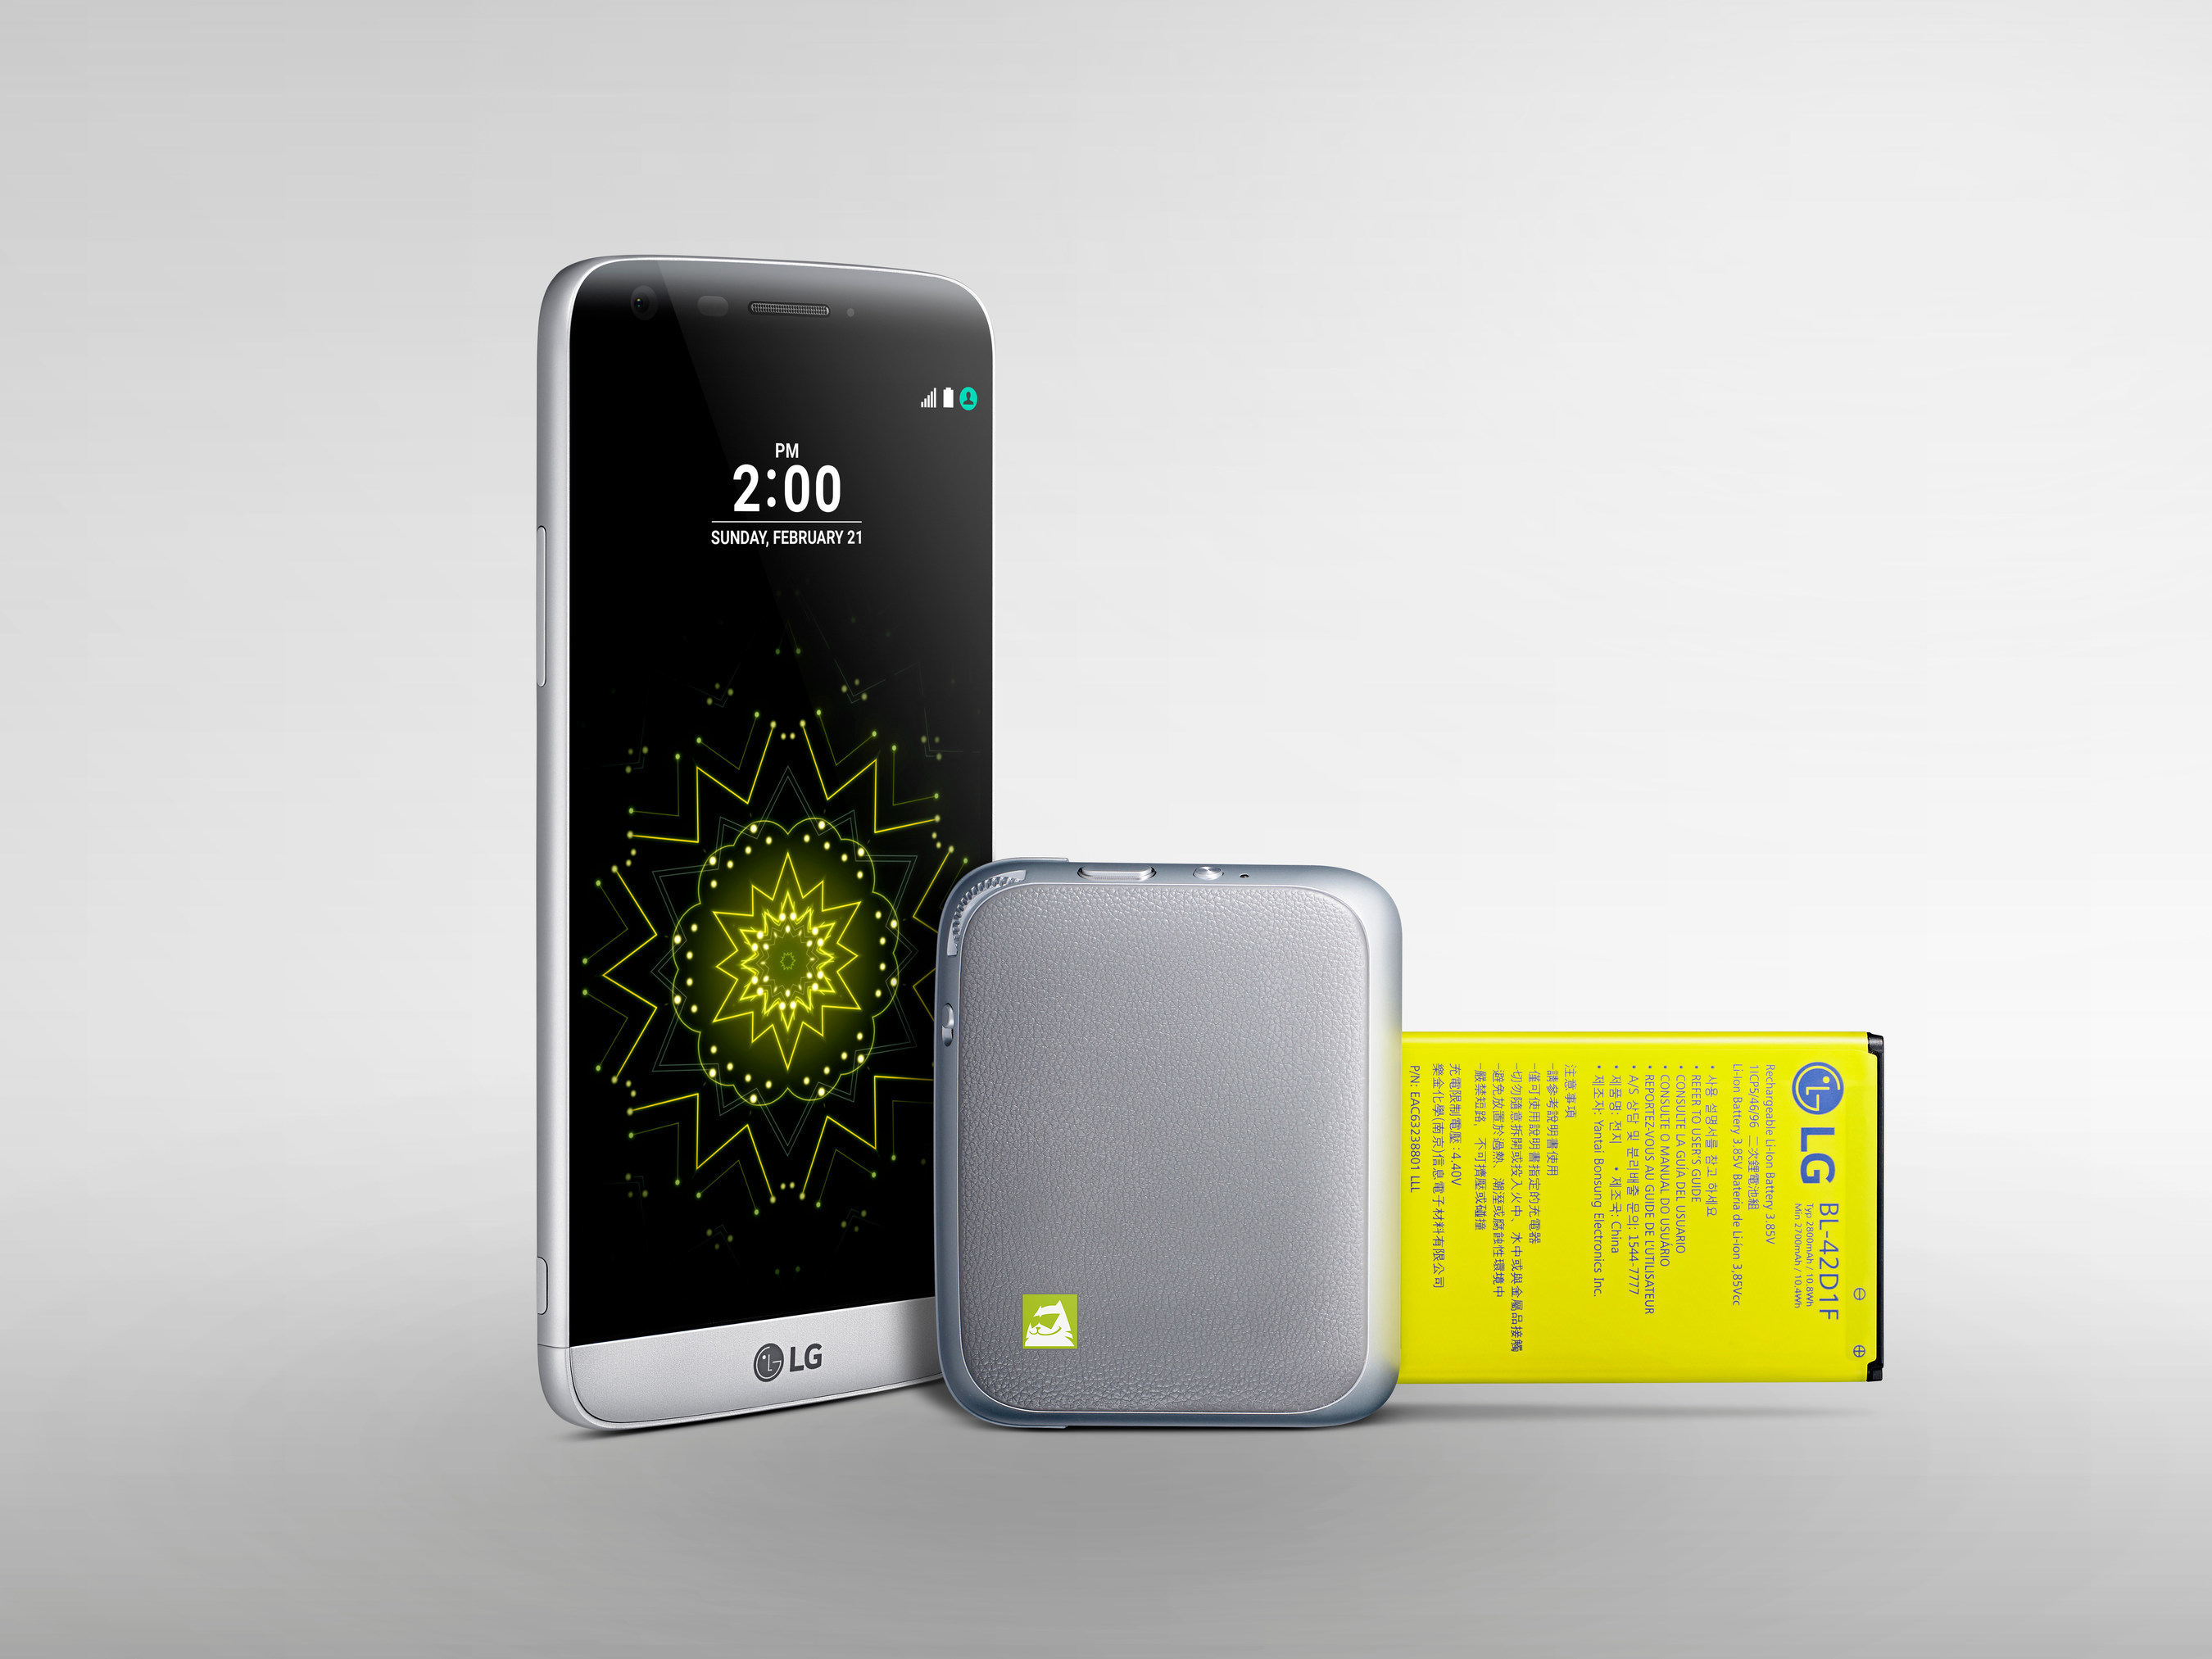 LG G5 'Friends' Companion Devices Launch In US